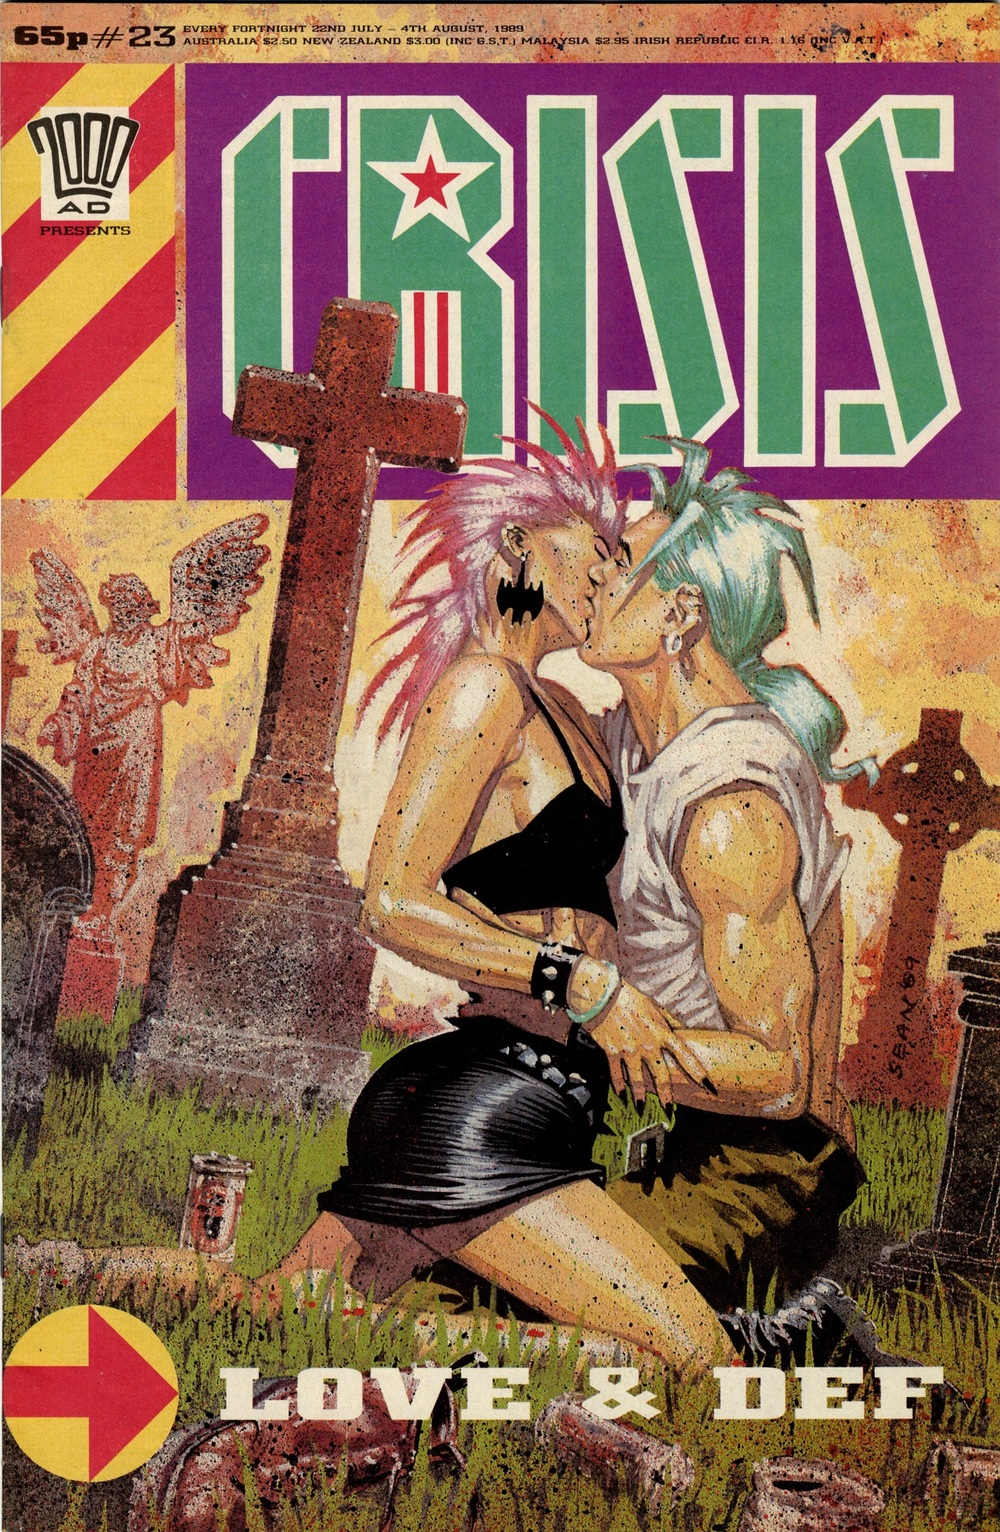 4 August 1989: Crisis (Third World War: Pat Mills (writer), Sean Phillips (artist))